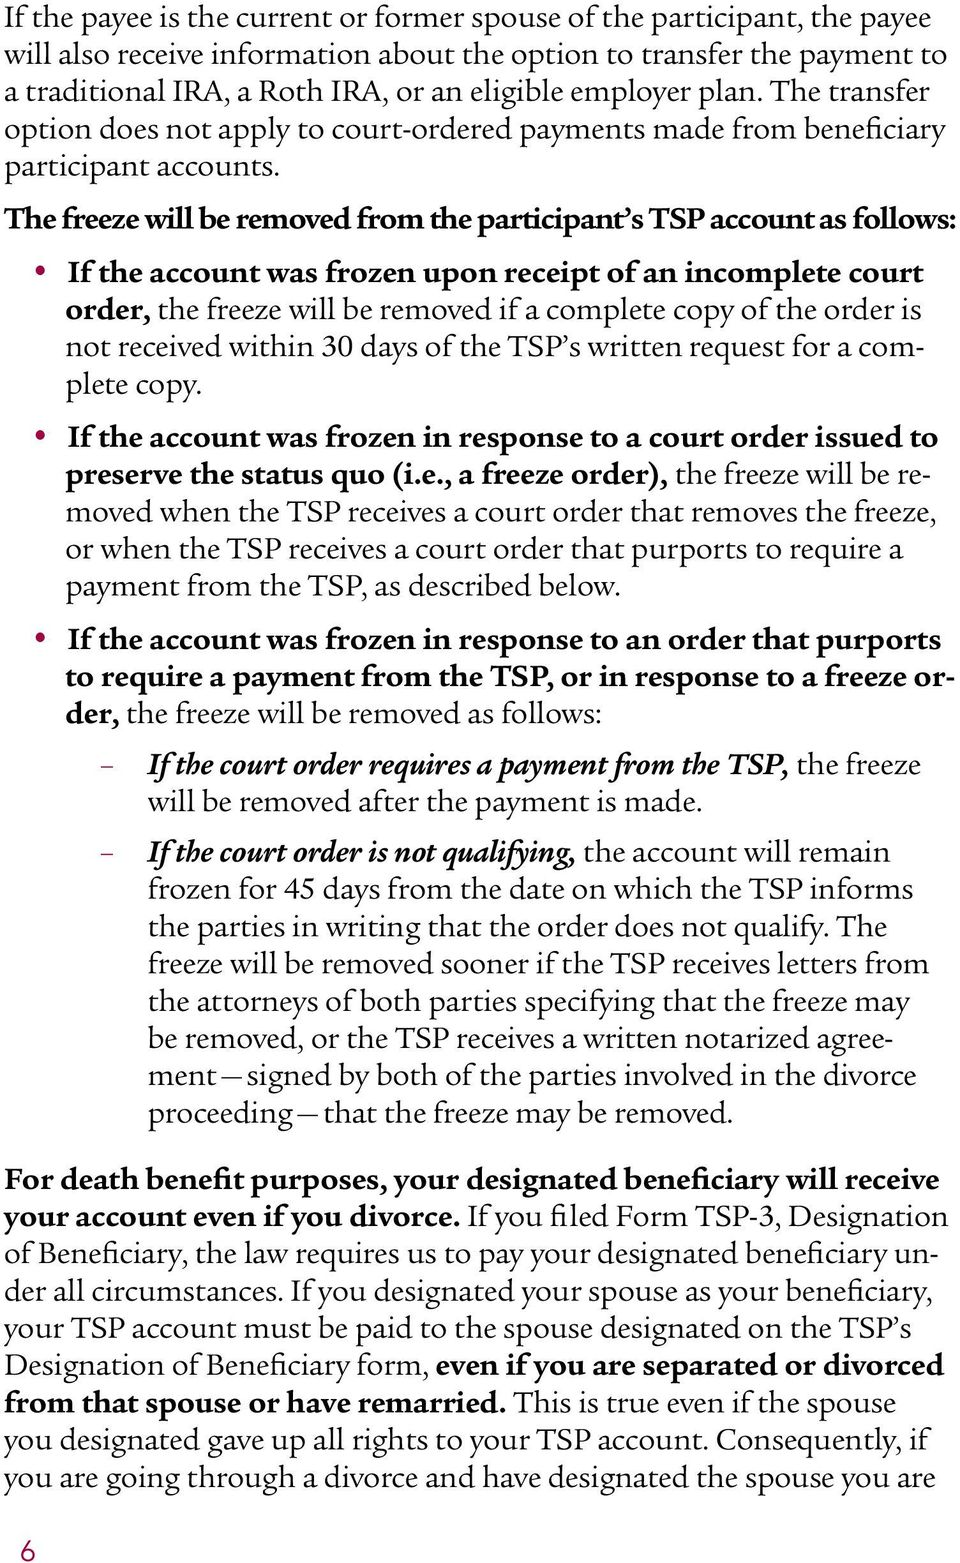 The freeze will be removed from the participant s TSP account as follows: y If the account was frozen upon receipt of an incomplete court order, the freeze will be removed if a complete copy of the